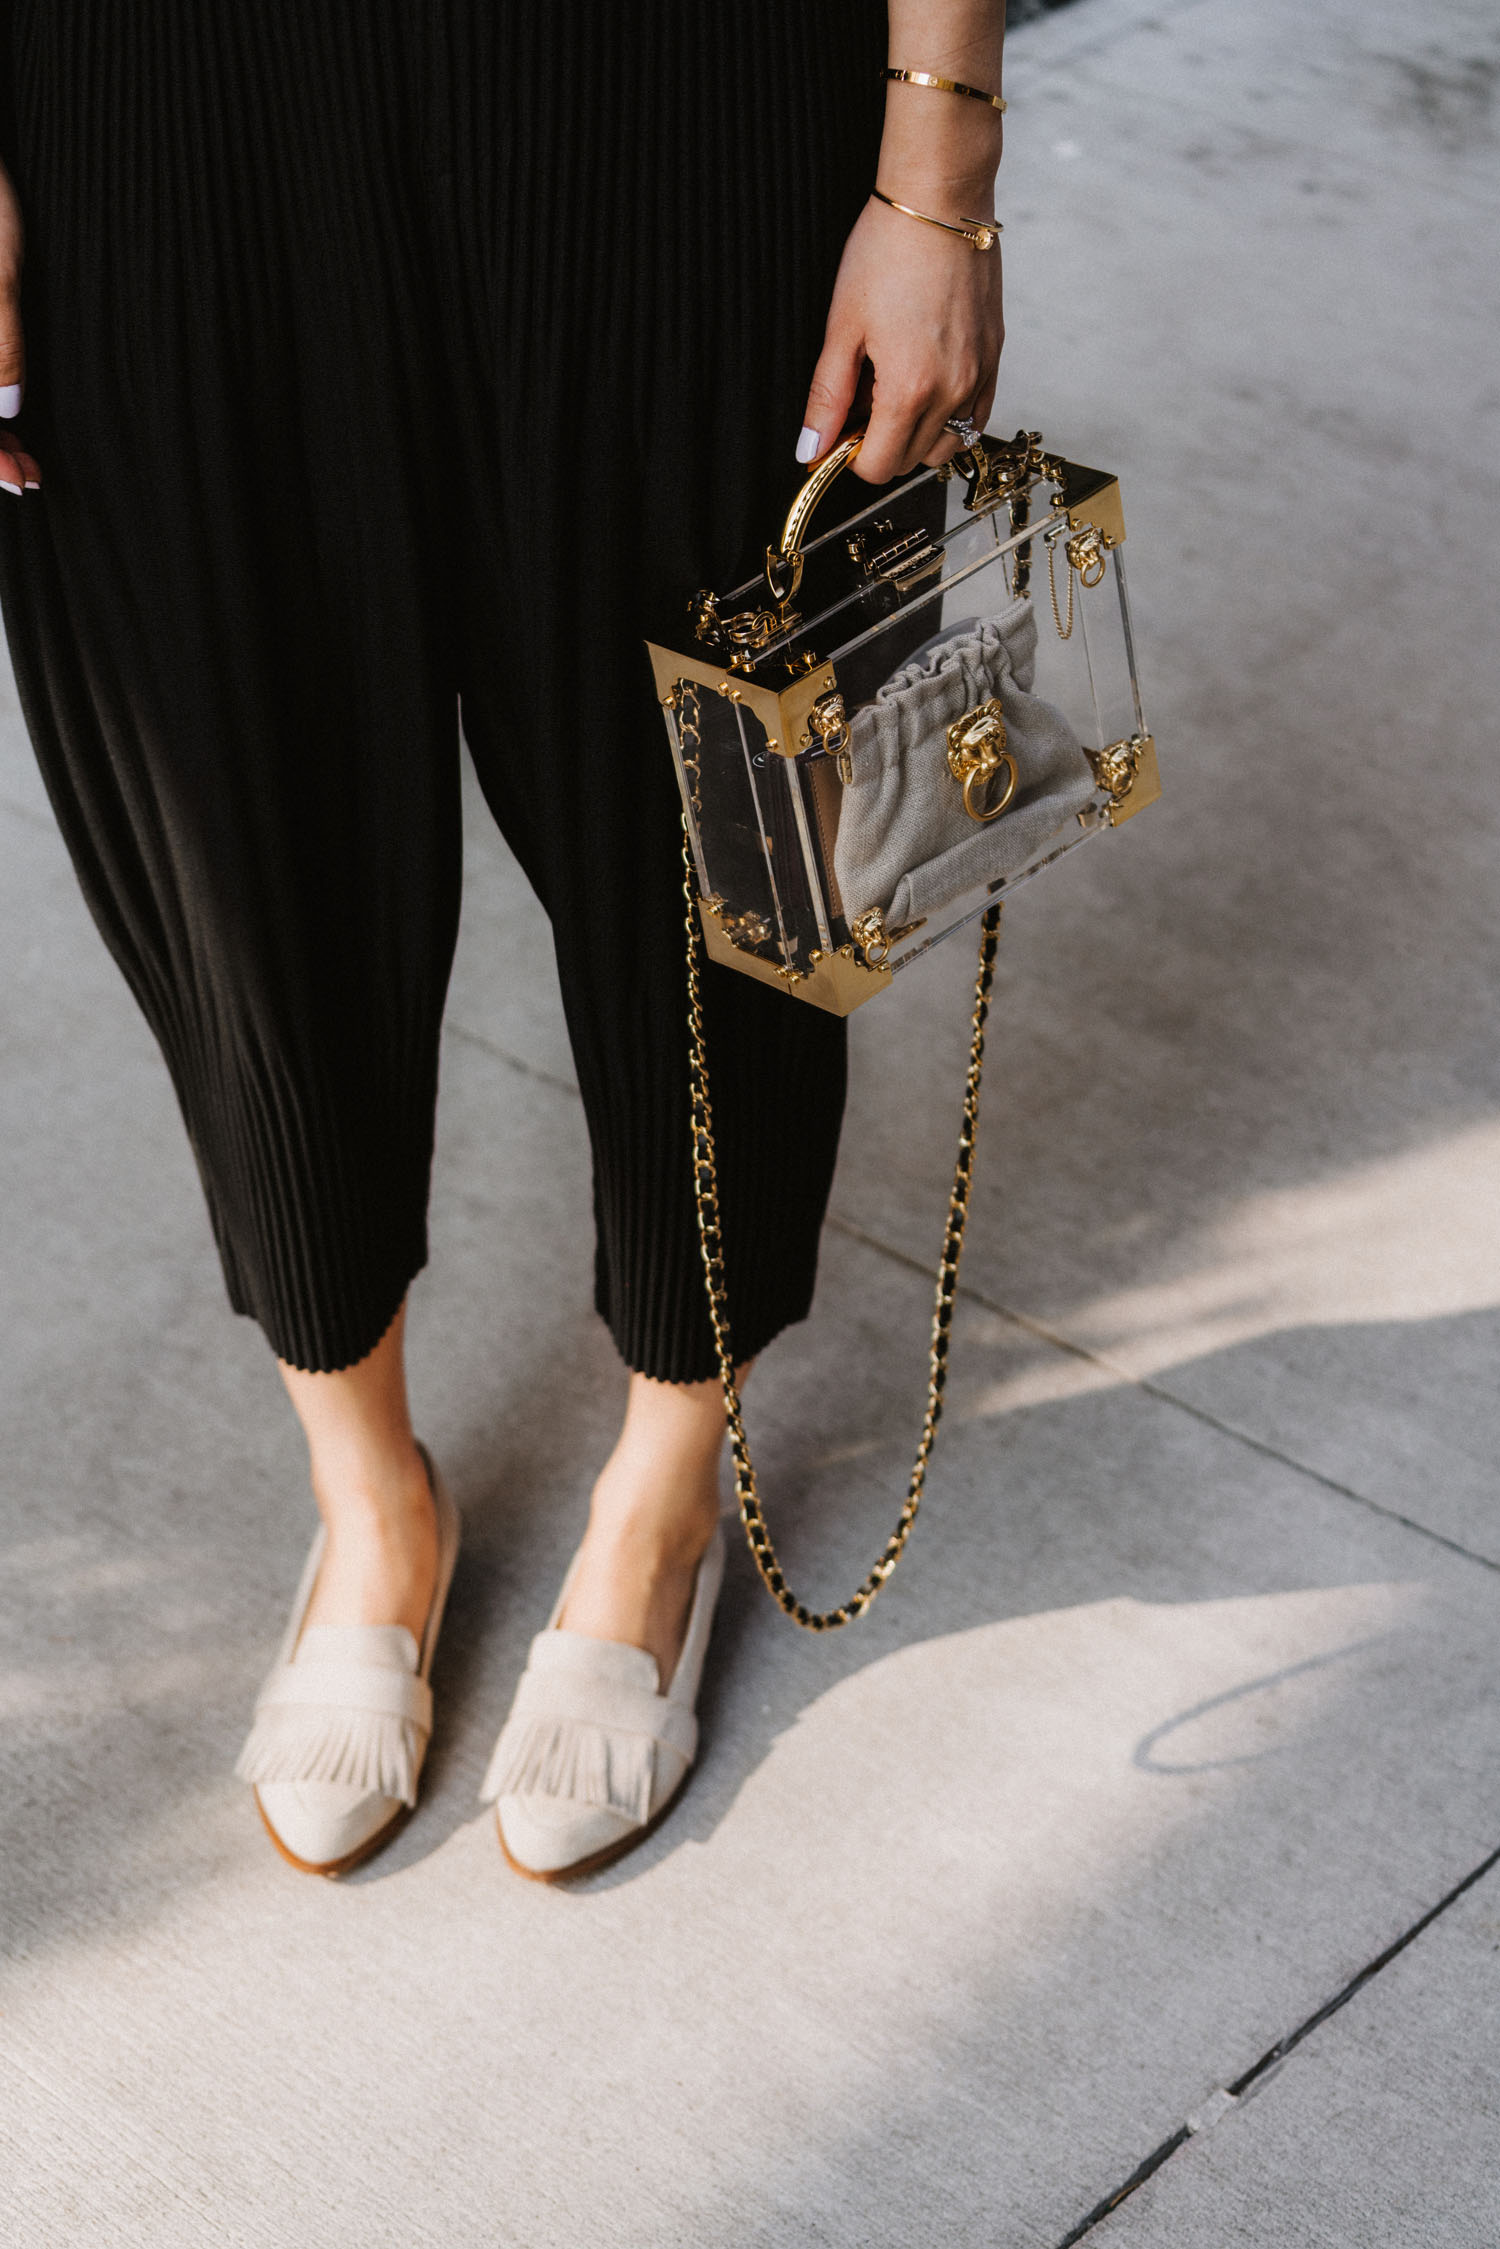 Eye To Eye Top , Issey Miyake Pants,  Thelma Loafers ,  Aspinal of London Bag , Aspinal of London Sunglasses, Janessa Leone Hat